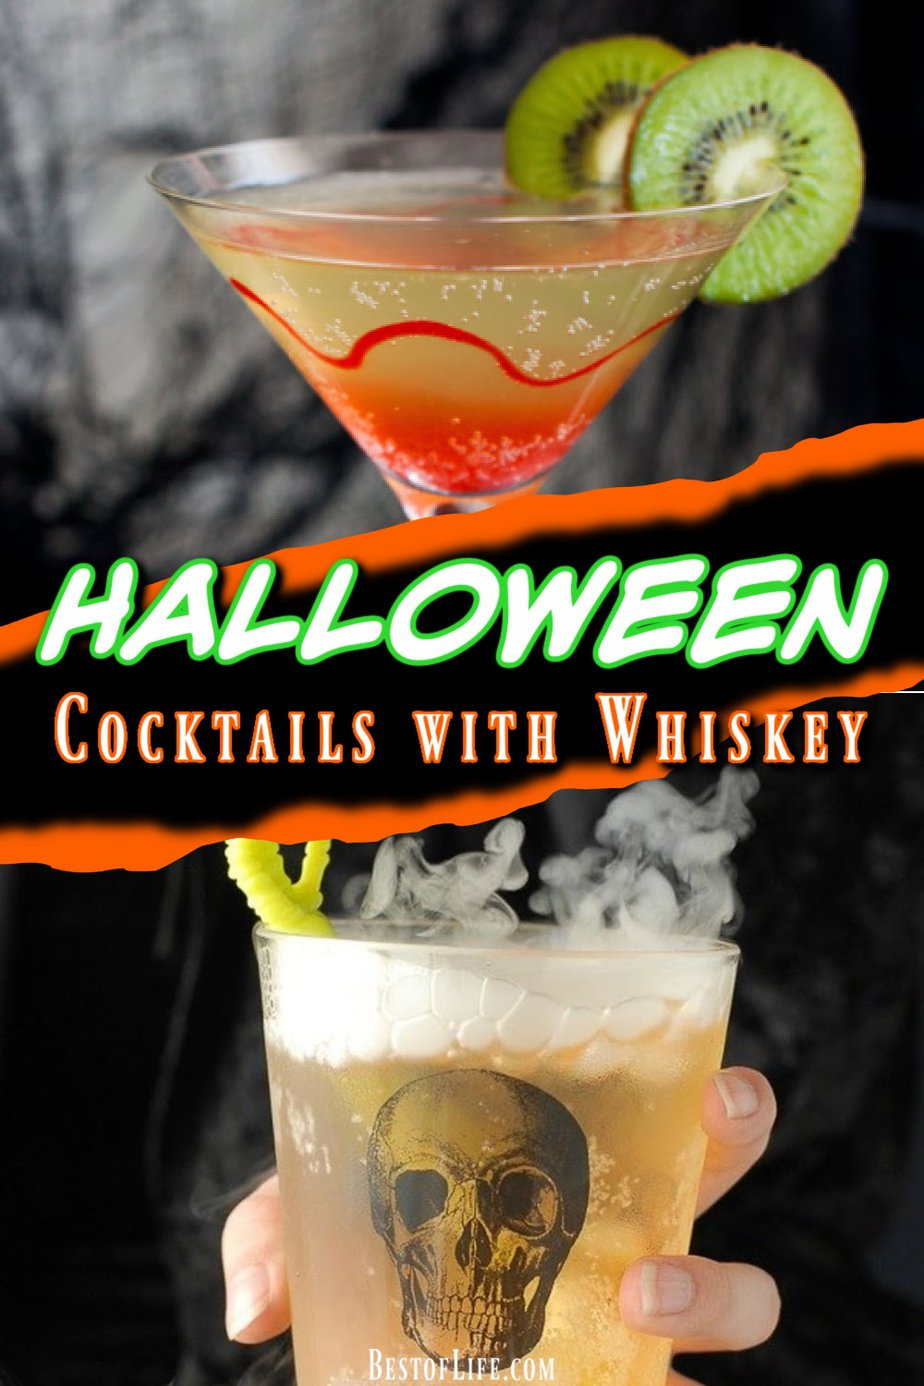 Halloween cocktails with whiskey are not only delicious Halloween party cocktails, but also make a festive wedding cocktail recipe that everyone will enjoy. Glowing Halloween Cocktails | Classy Halloween Cocktails | Wedding Cocktail Recipes | Drink Recipes for Weddings | Drink Recipes for Halloween Parties | Halloween Party Recipes | Halloween Party Cocktails | Whiskey Cocktails for Fall | Fall Whiskey Cocktails #whiskey #halloween via @thebestoflife